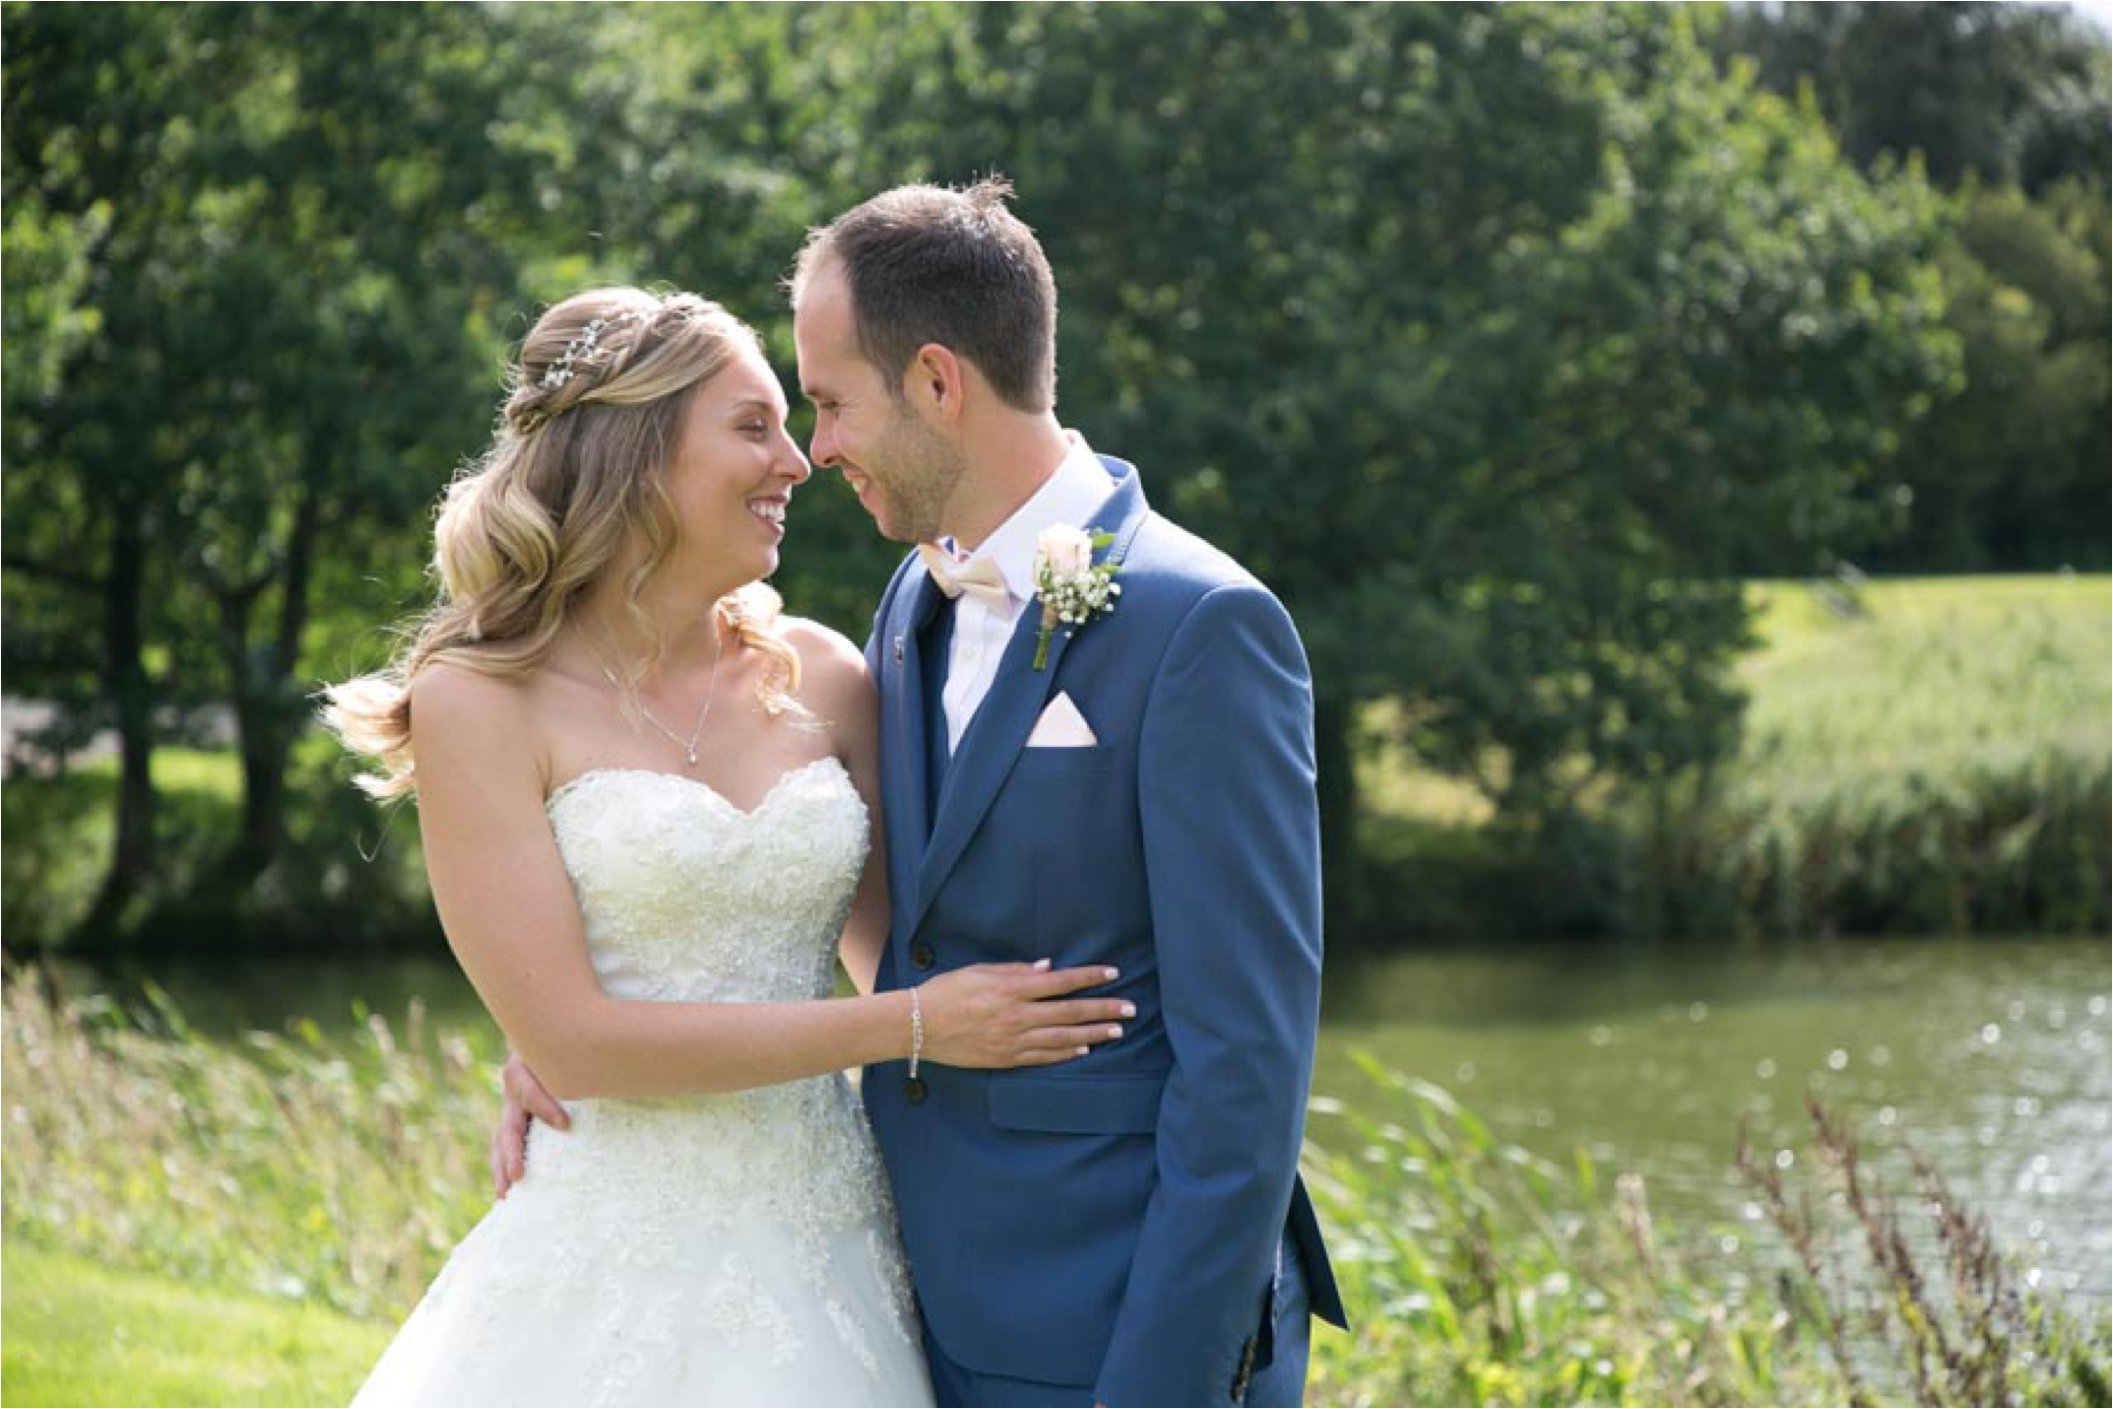 lovely couple photos at stoke by naylans wedding